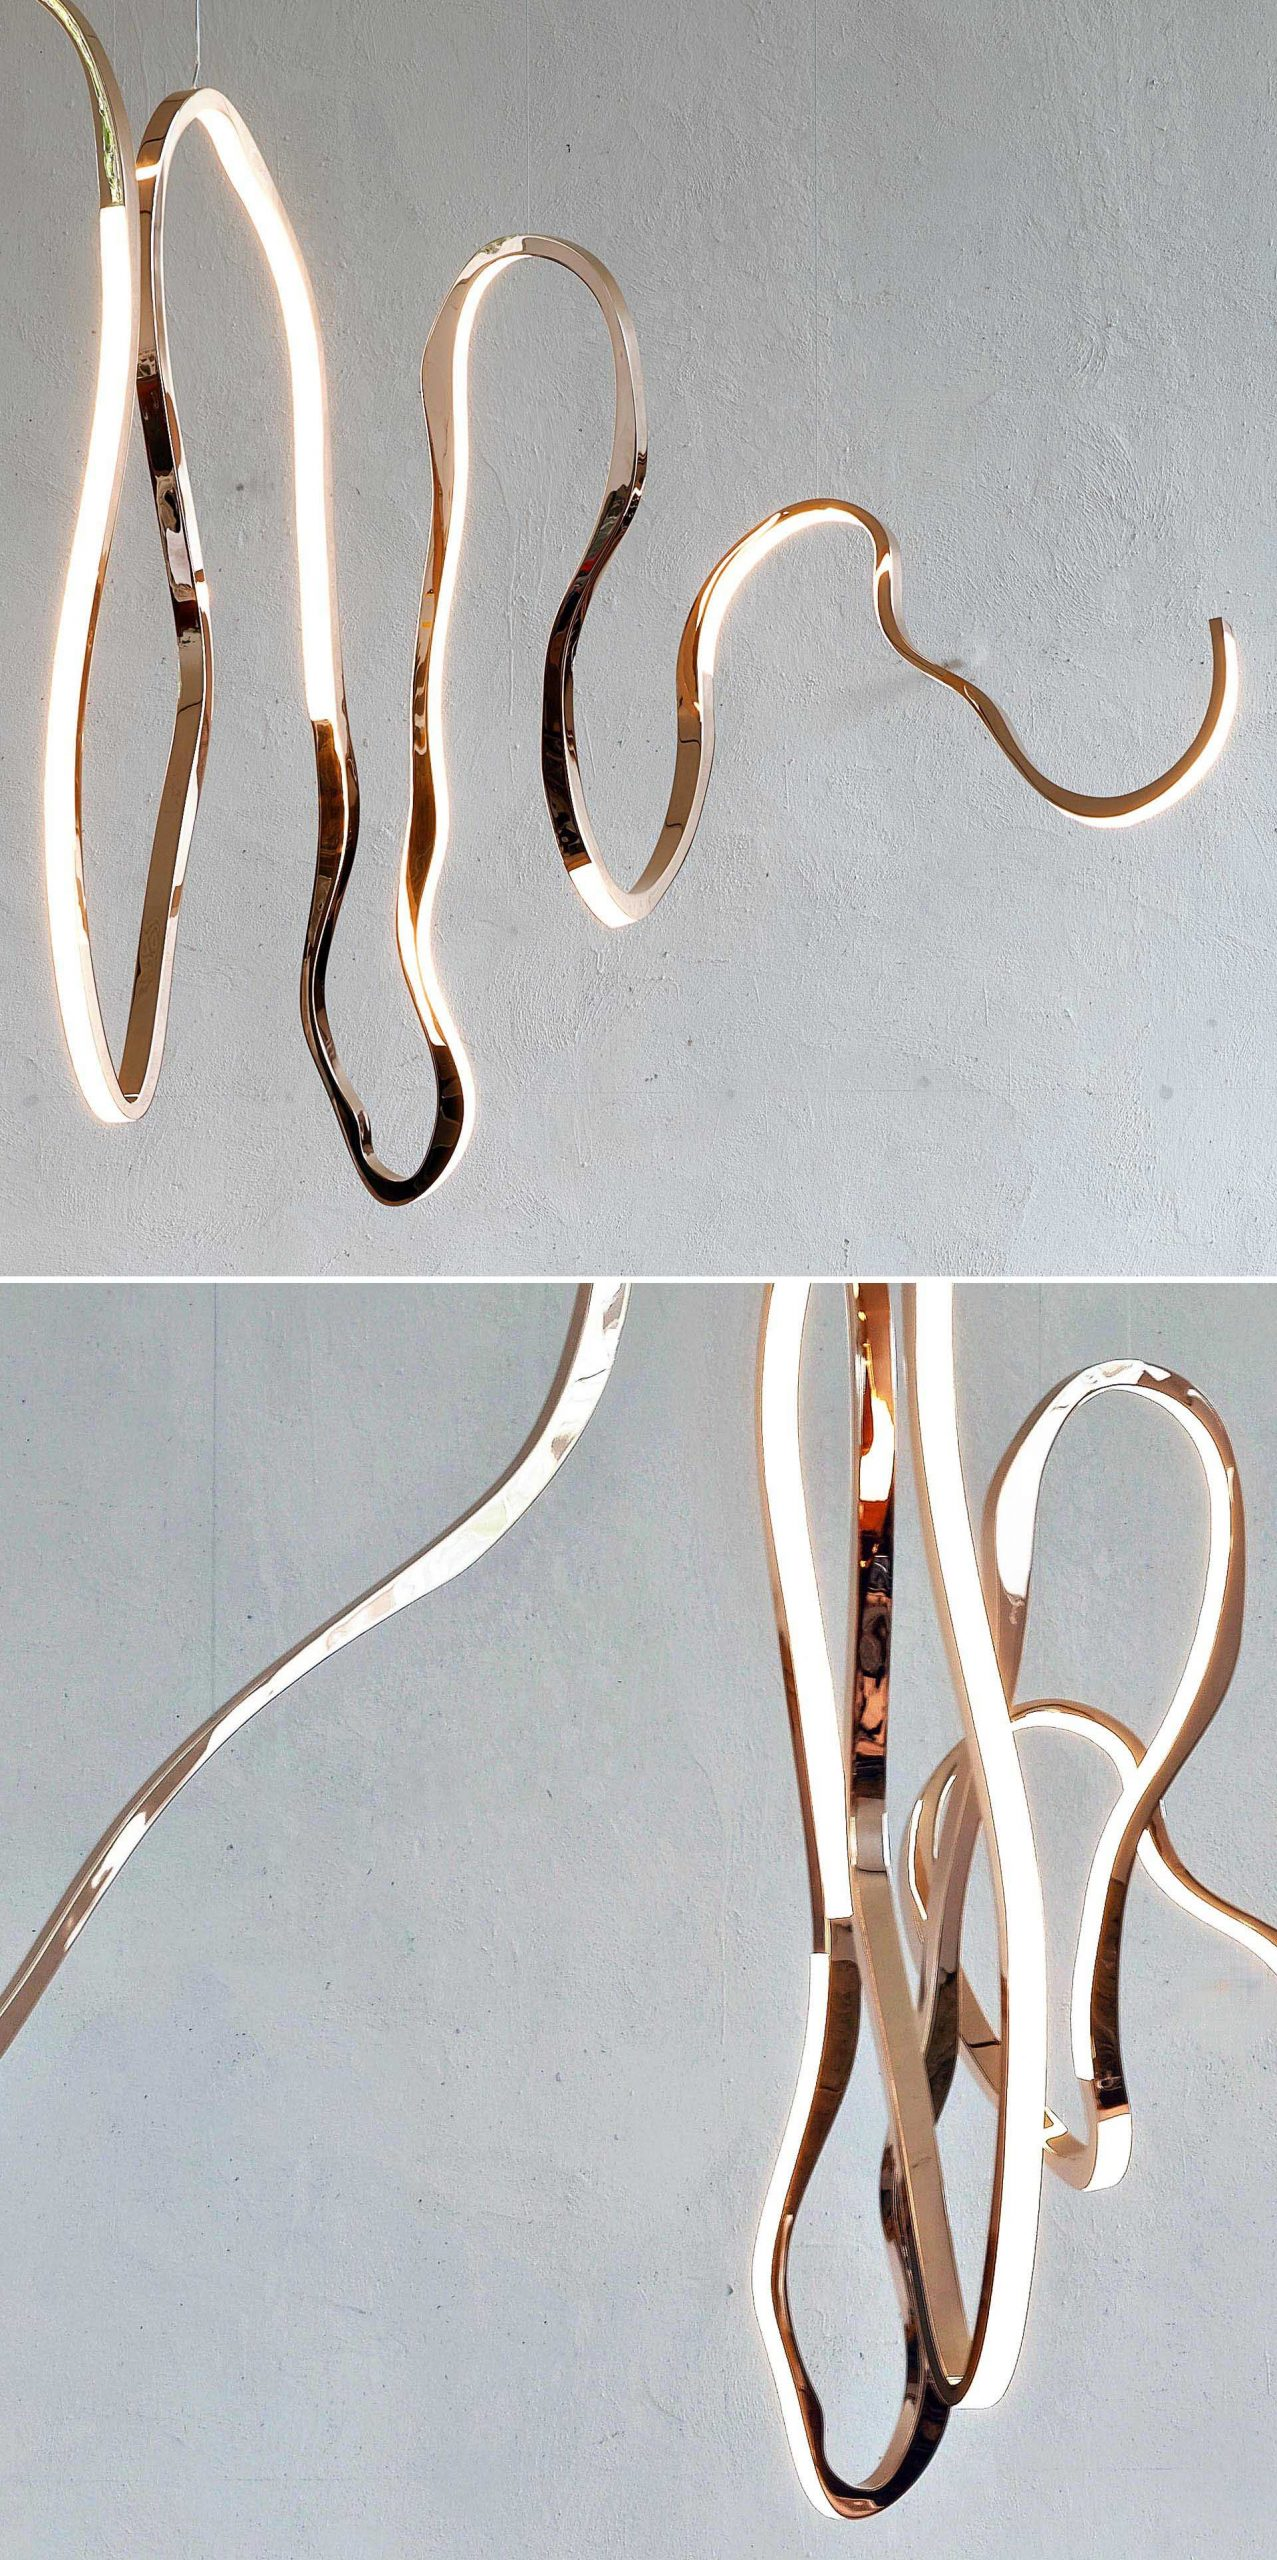 A modern sculptural light made from mirrored bronze, glass, and LEDs.